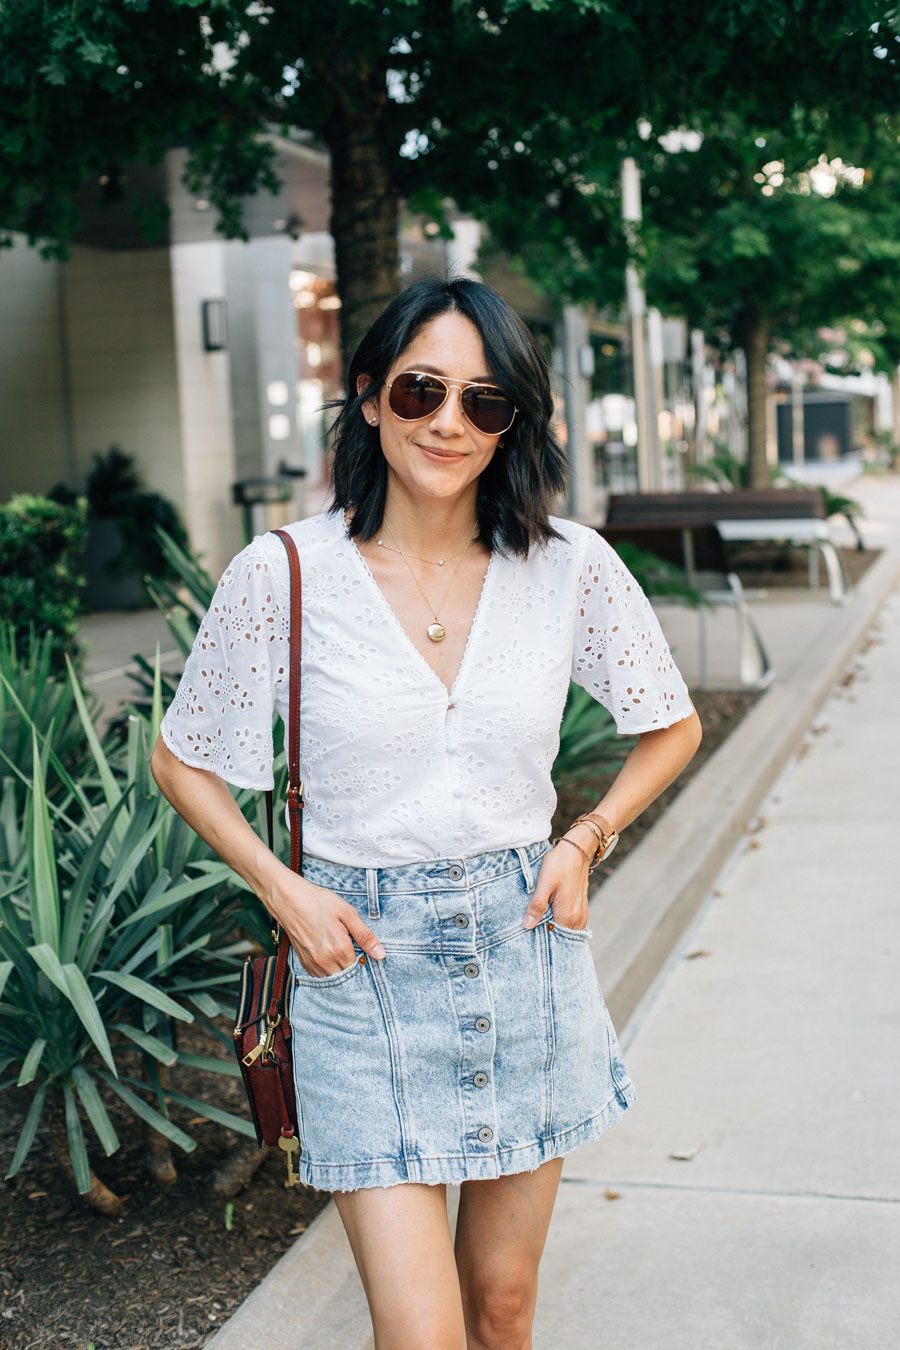 Lilly Beltran in an Abercrombie acid wash denim skirt with a white eyelet top for a fun summer look